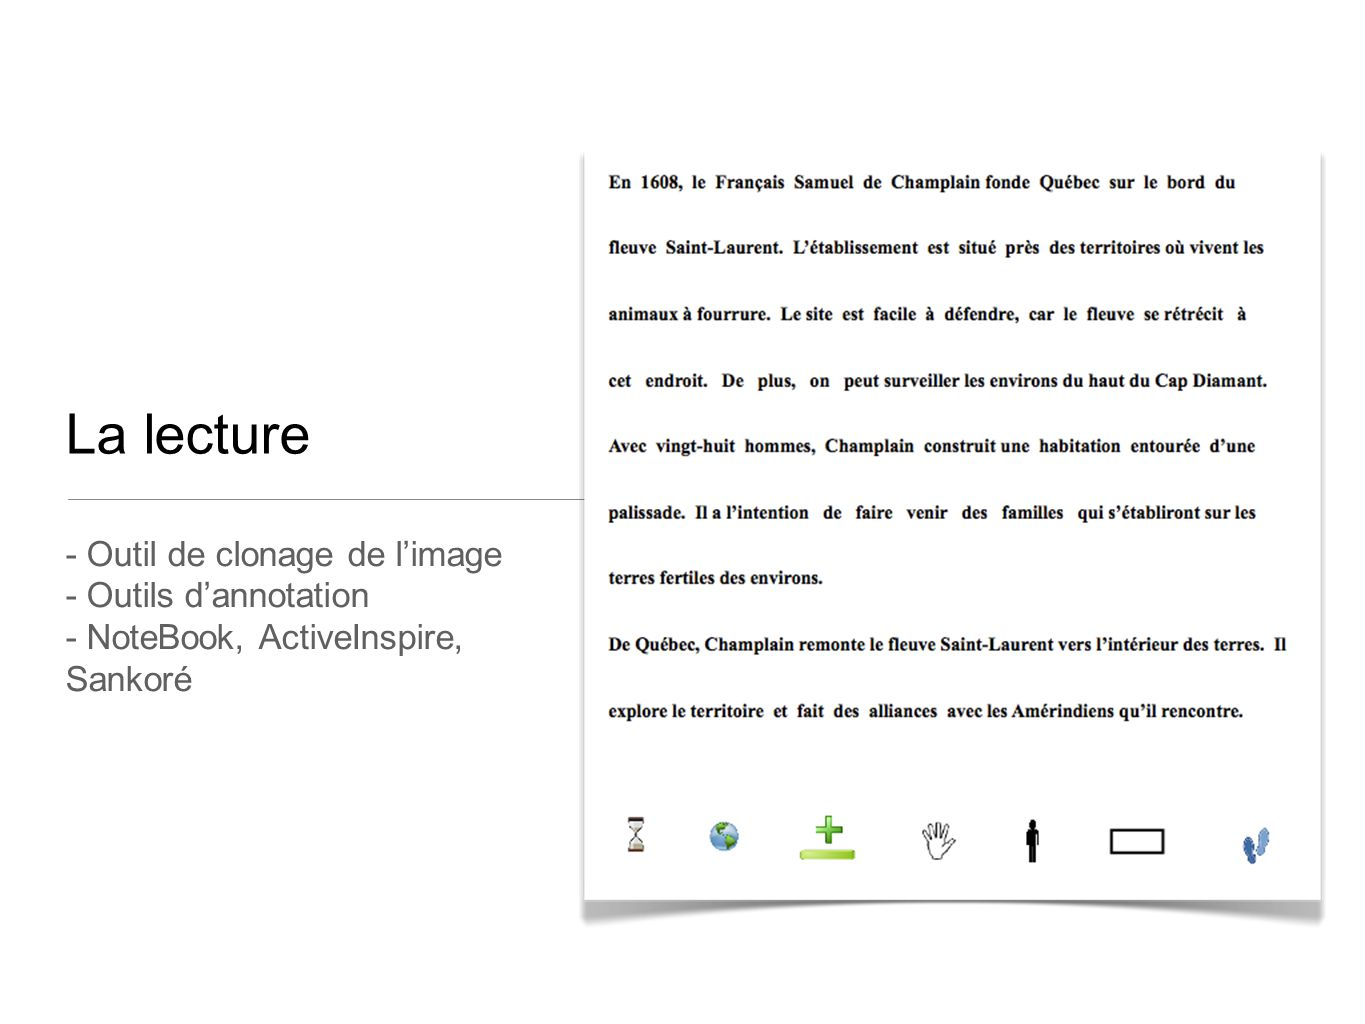 La lecture - Outil de clonage de l'image - Outils d'annotation - NoteBook, ActiveInspire, Sankoré